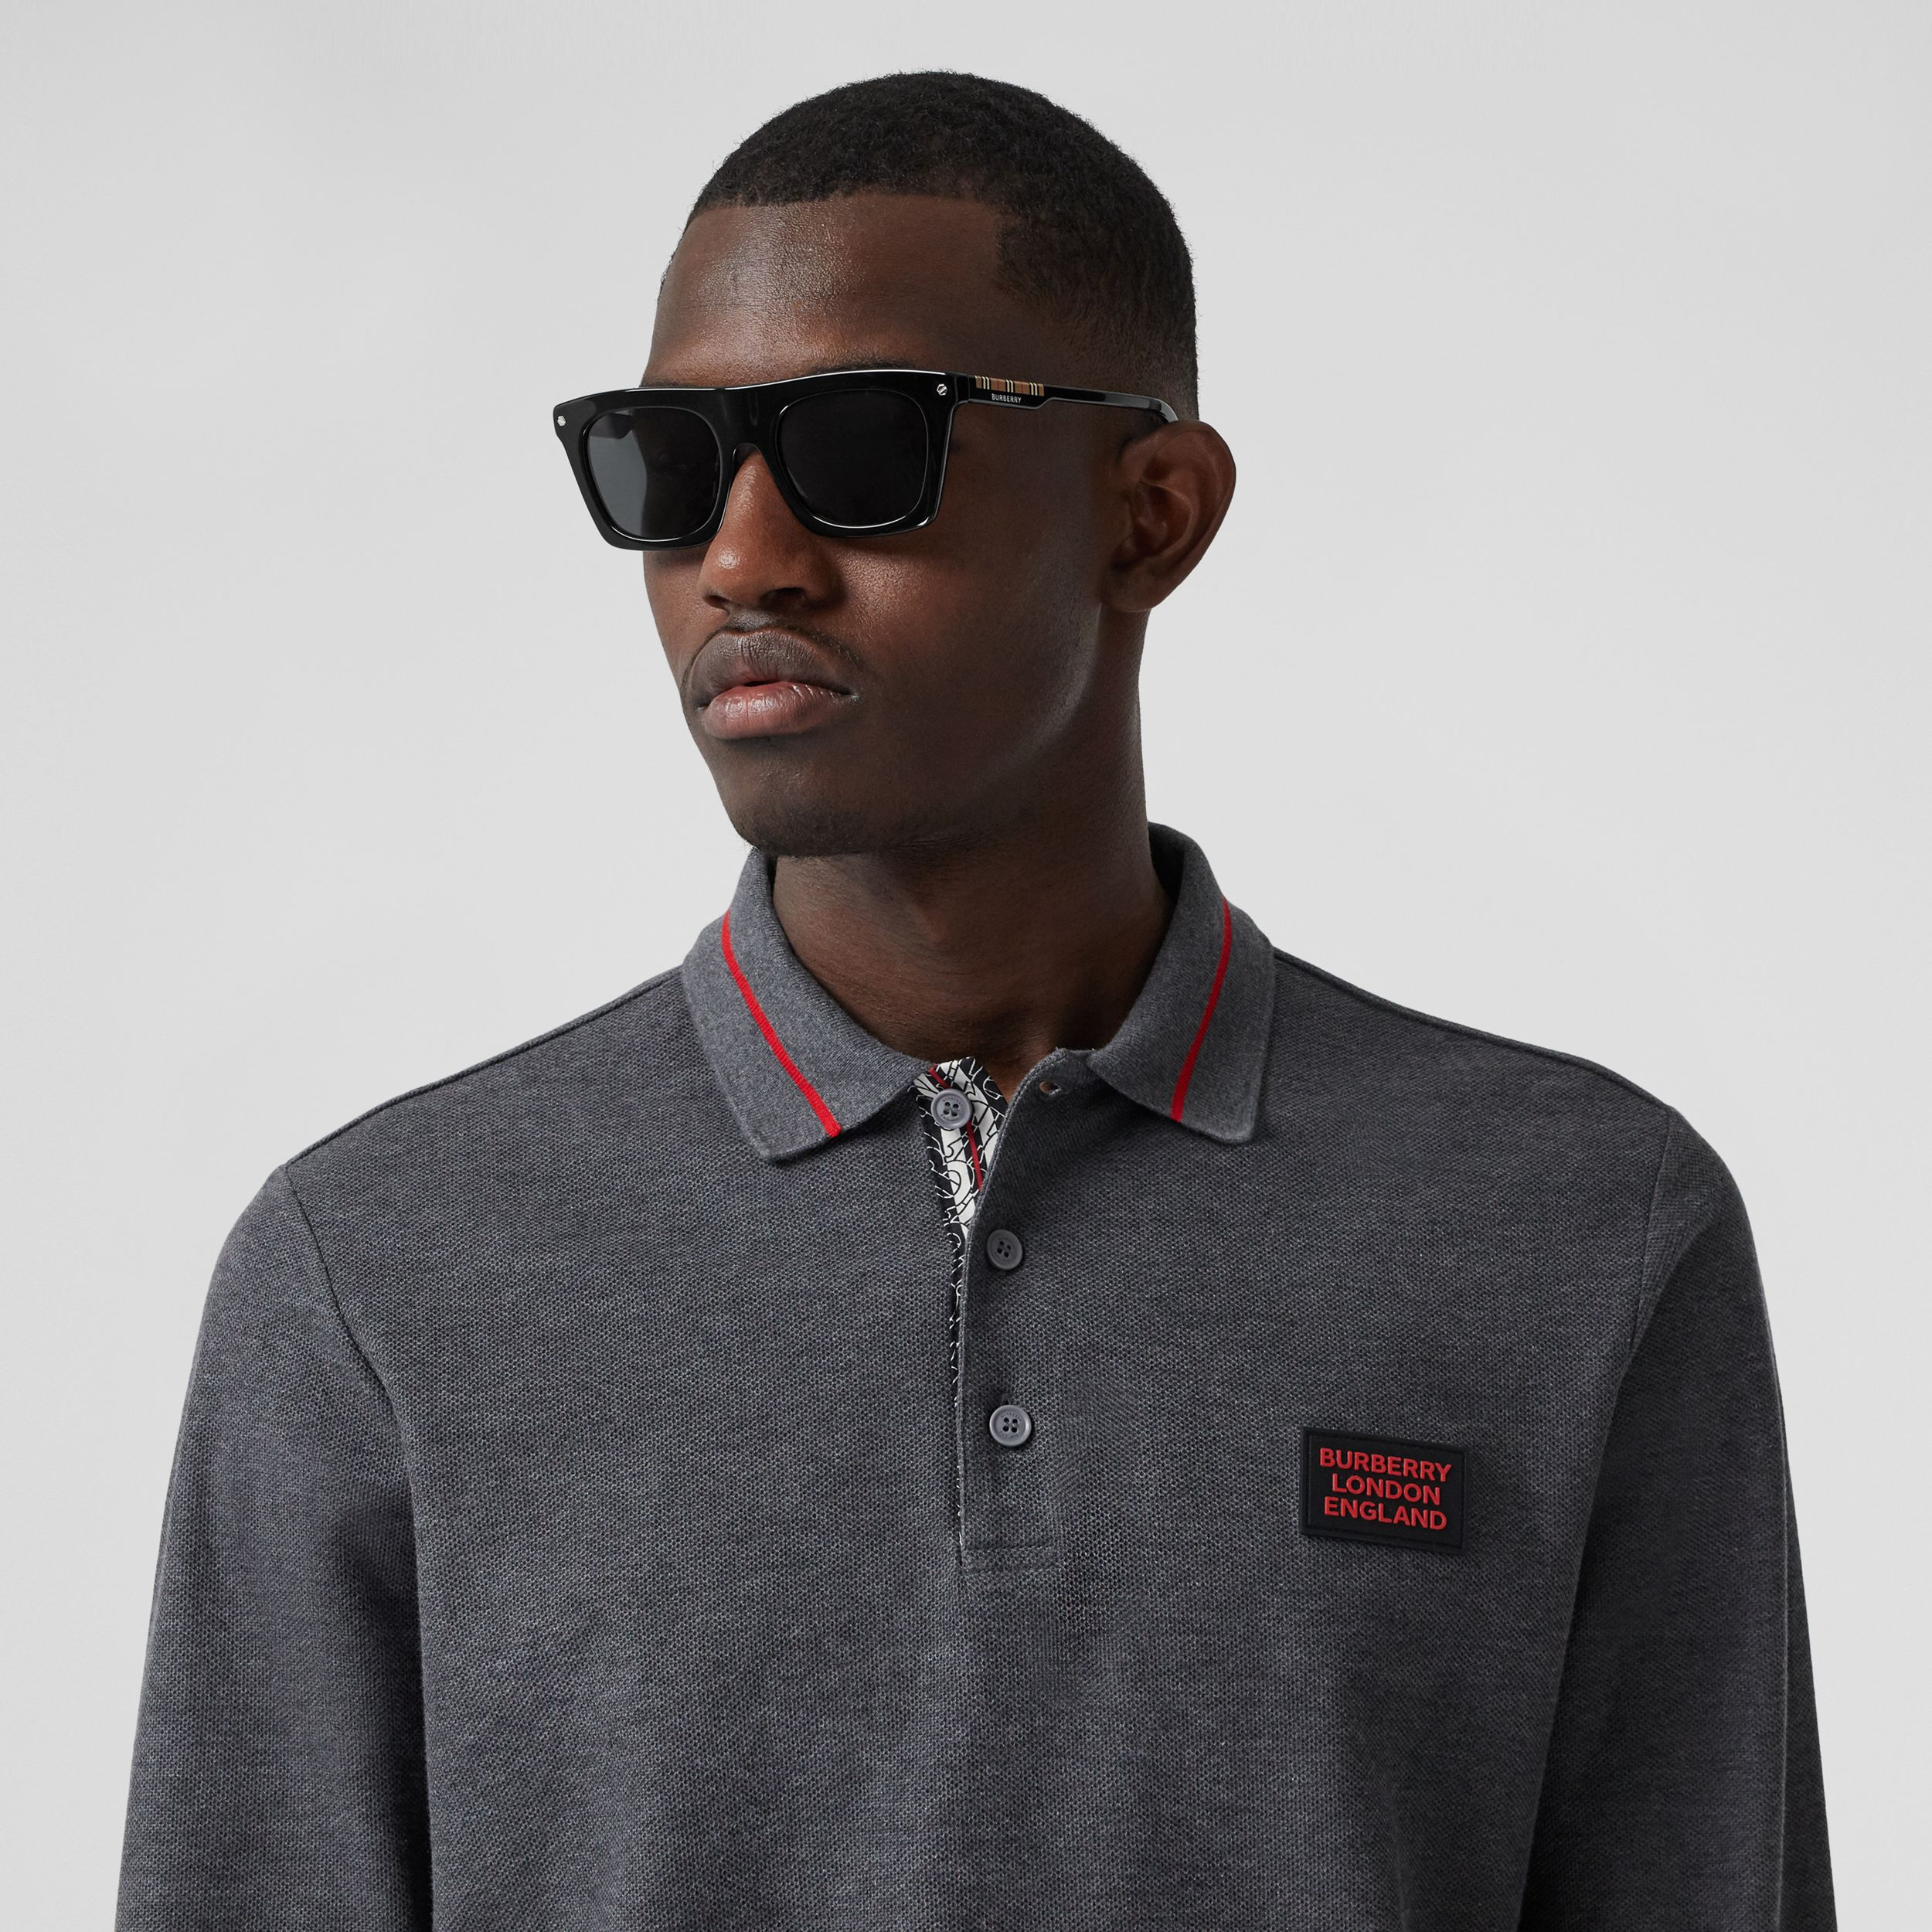 Long-sleeve Logo Appliqué Cotton Polo Shirt in Mid Grey Melange - Men | Burberry - 2